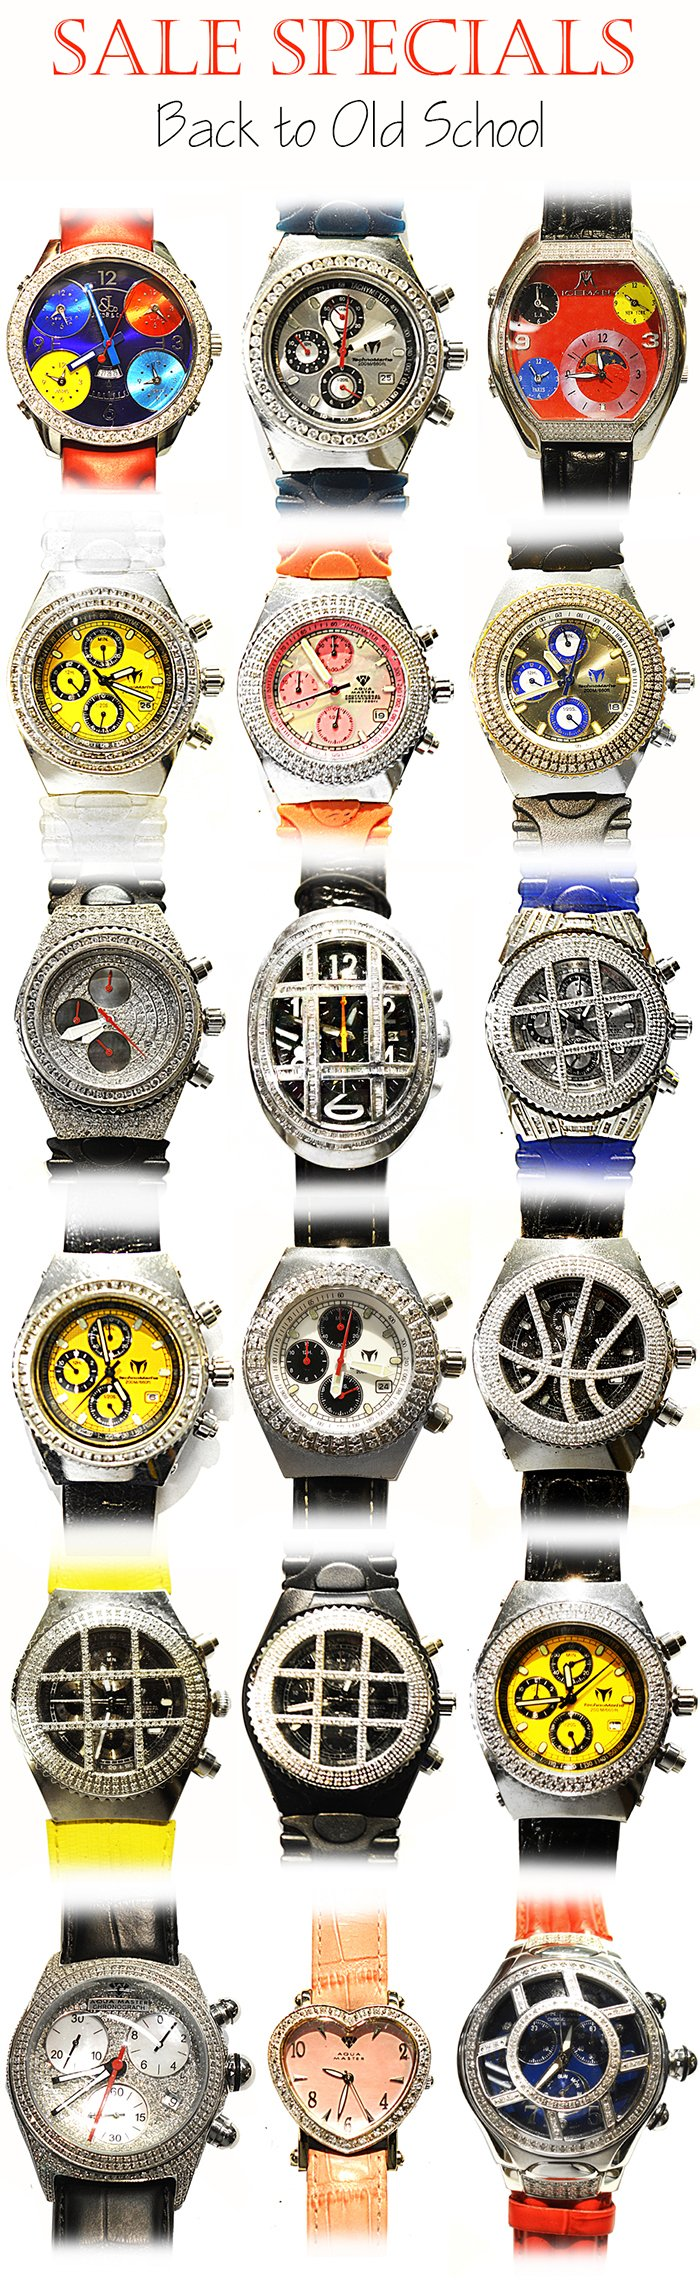 216844-675959-old_school_watches.w1024.jpg